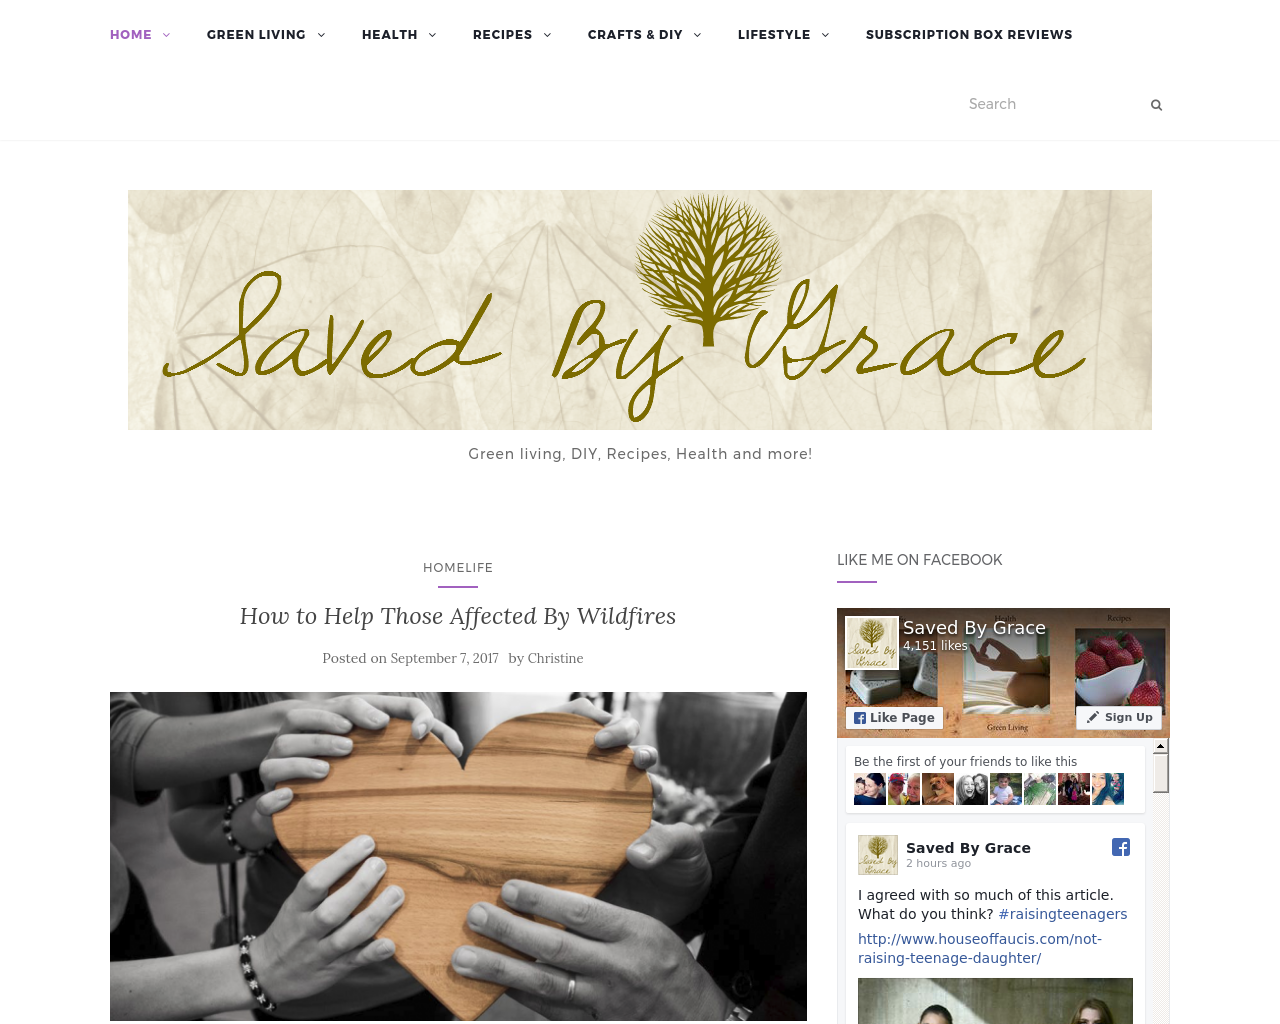 Saved-By-Grace-Blog-Advertising-Reviews-Pricing